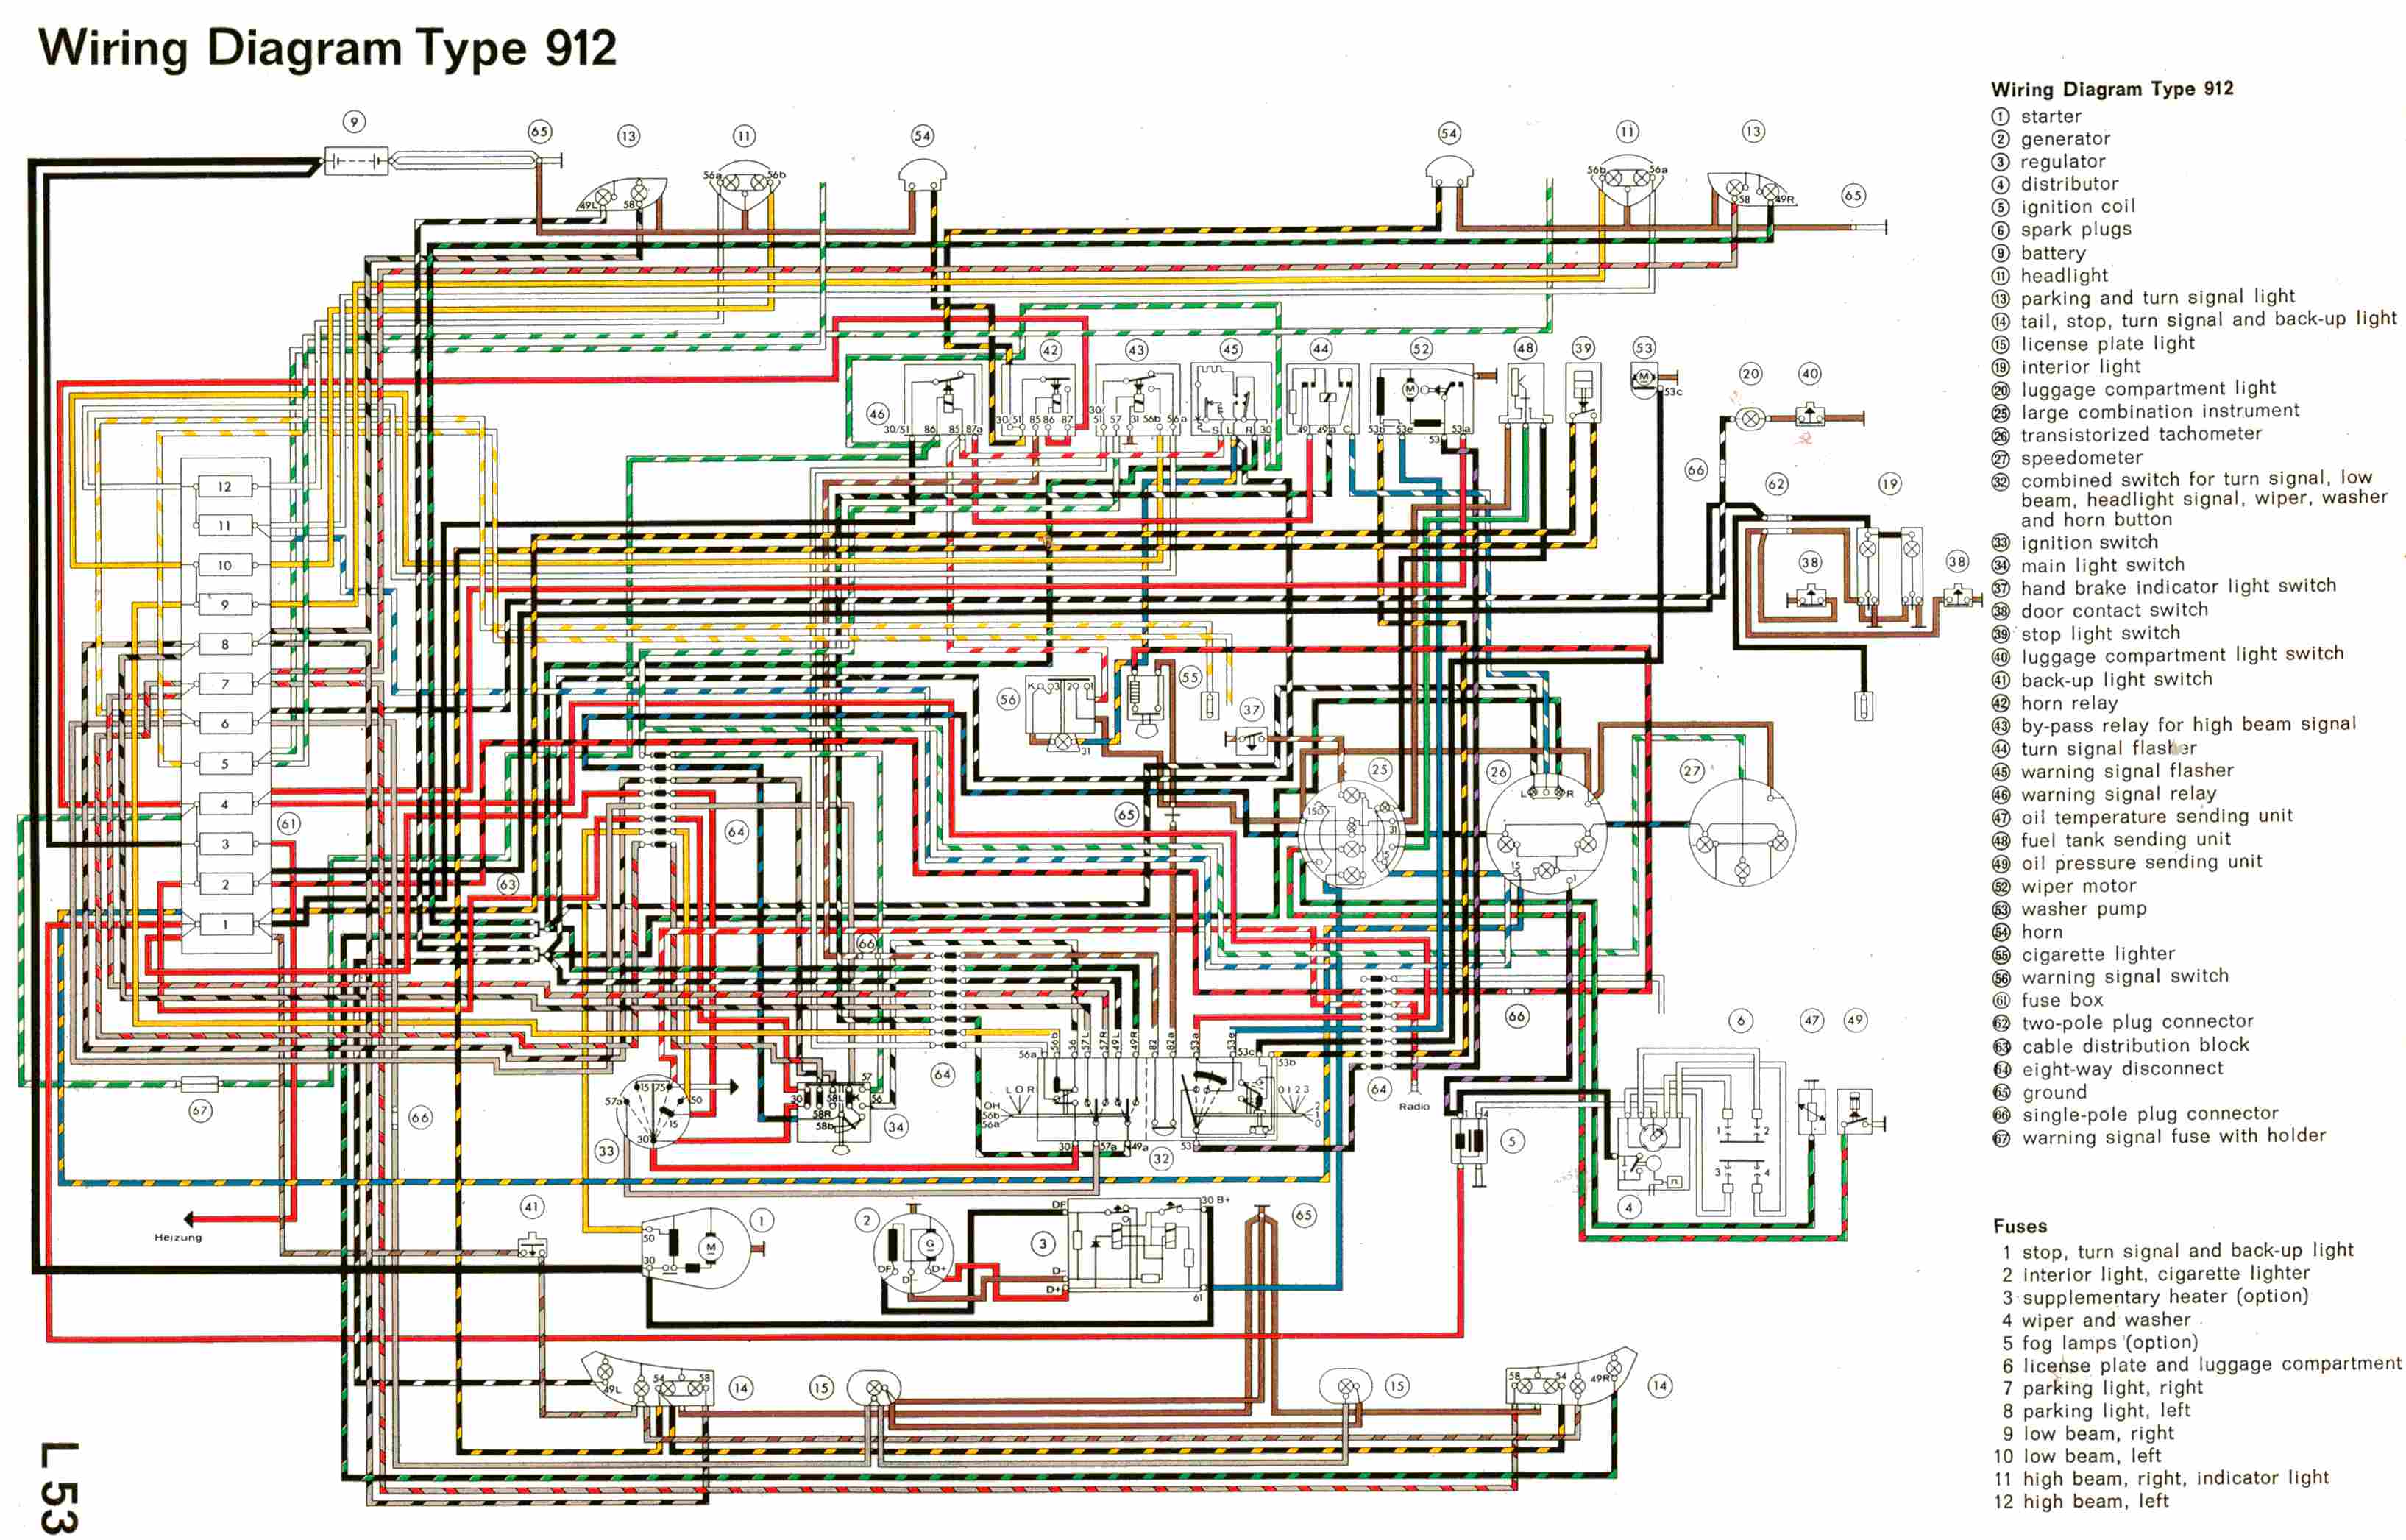 complete electrical wiring diagram of porsche type 912?t=1508746814 porsche car manuals, wiring diagrams pdf & fault codes porsche 944 wiring diagram pdf at aneh.co